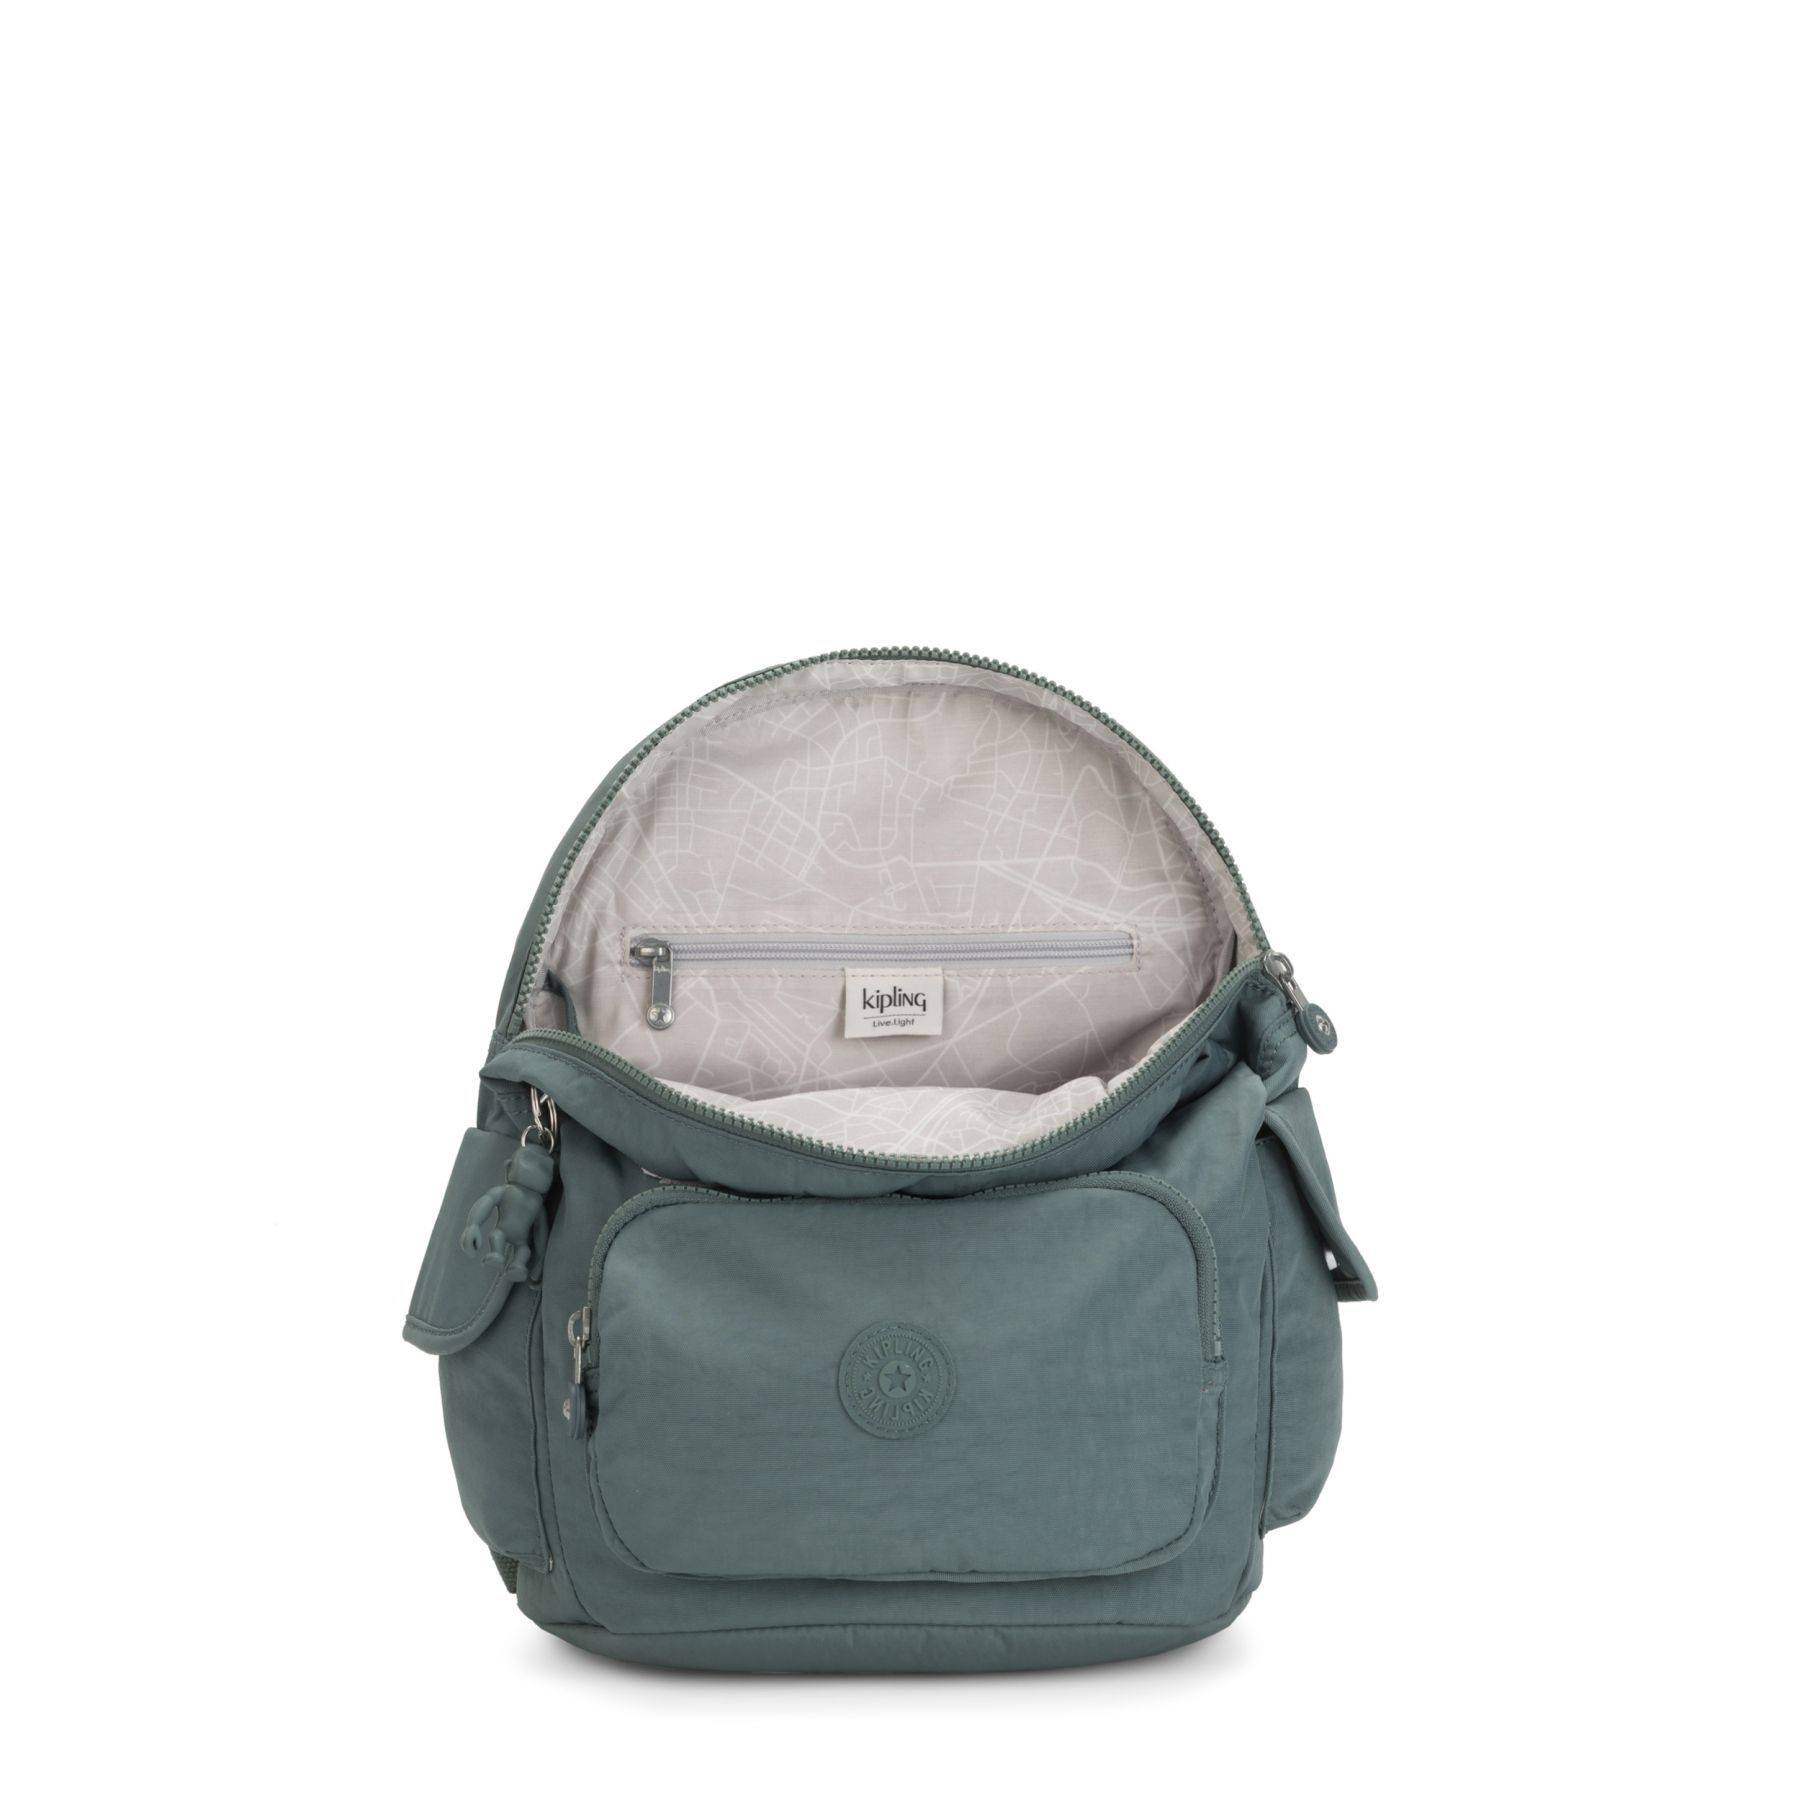 Mochila Média City Pack S Kipling Light Aloe